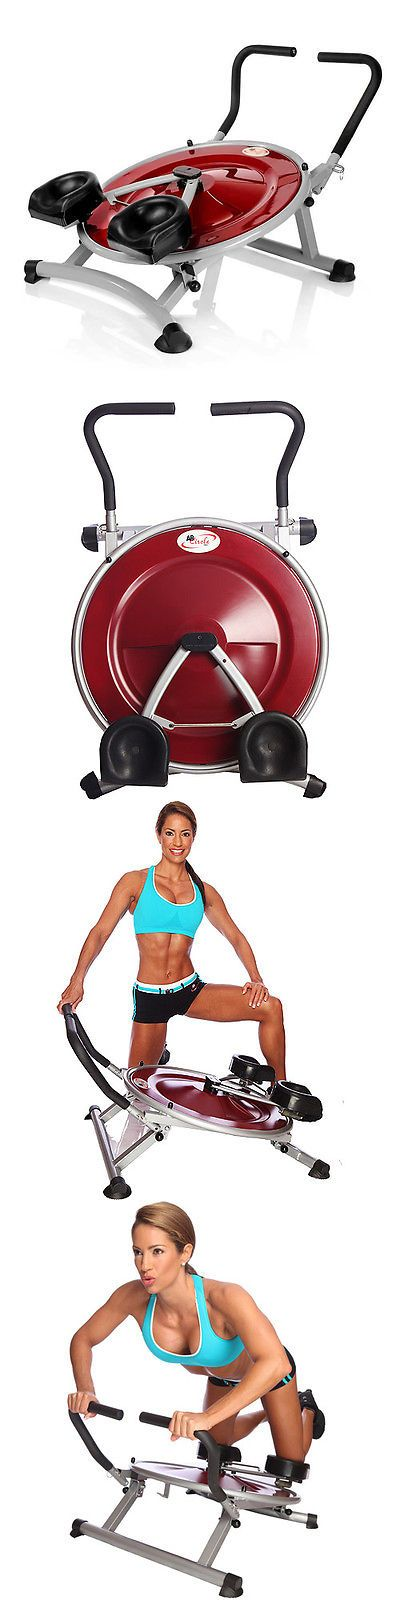 Abdominal Exercisers 15274: As Seen On Tv Ab Circle Pro Abs Exercise Machine And Workout Dvd -> BUY IT NOW ONLY: $54.99 on eBay!